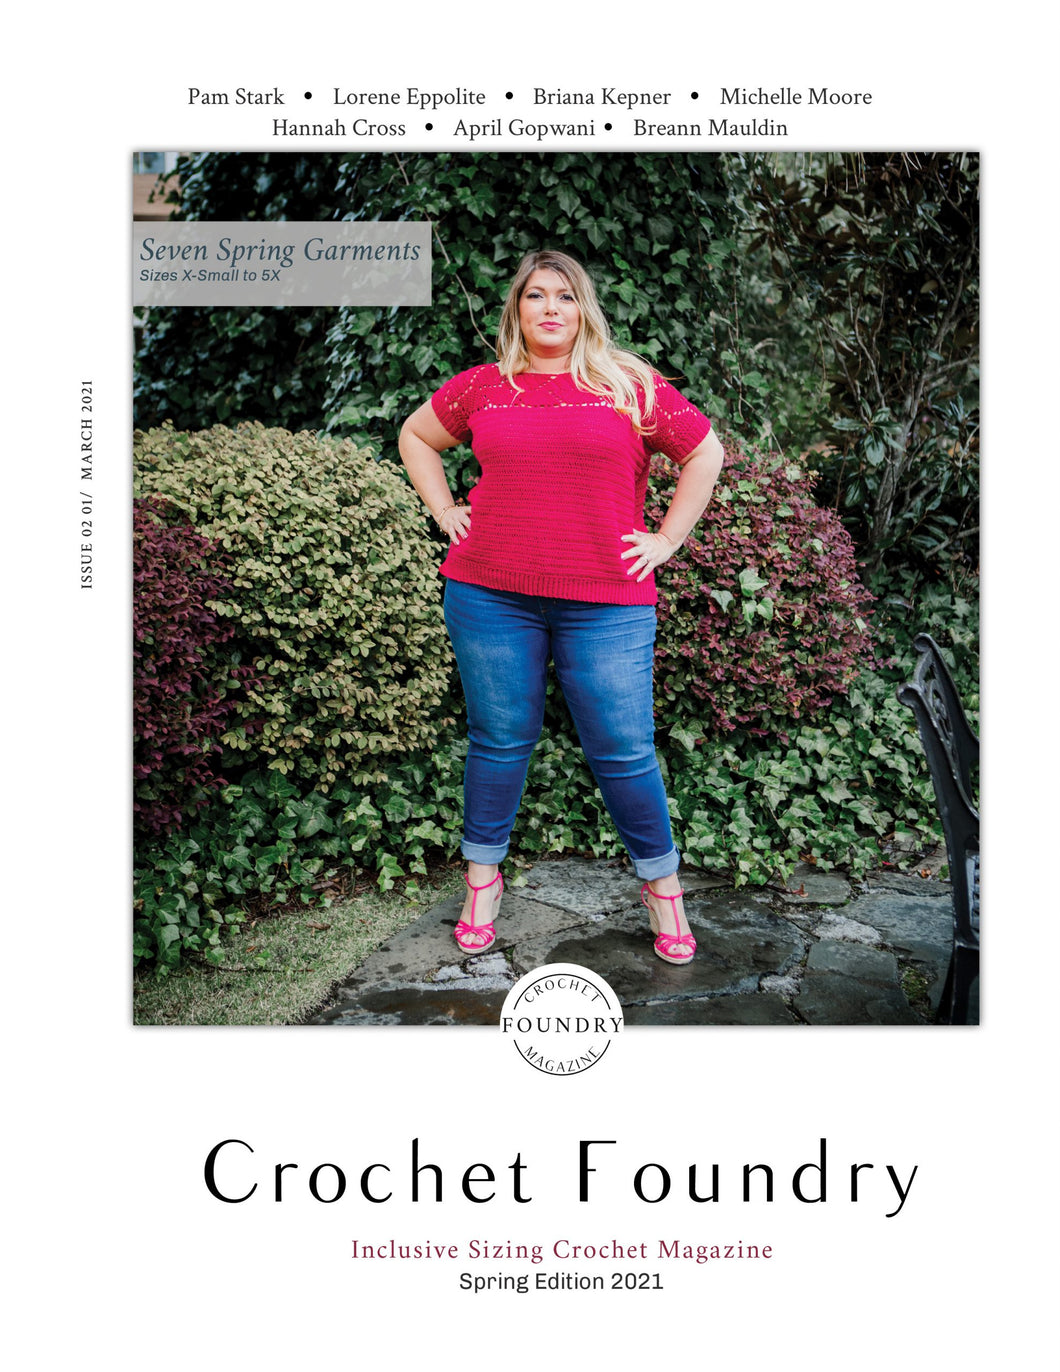 cover of the Spring 2021 issue of Crochet Foundry Magazine